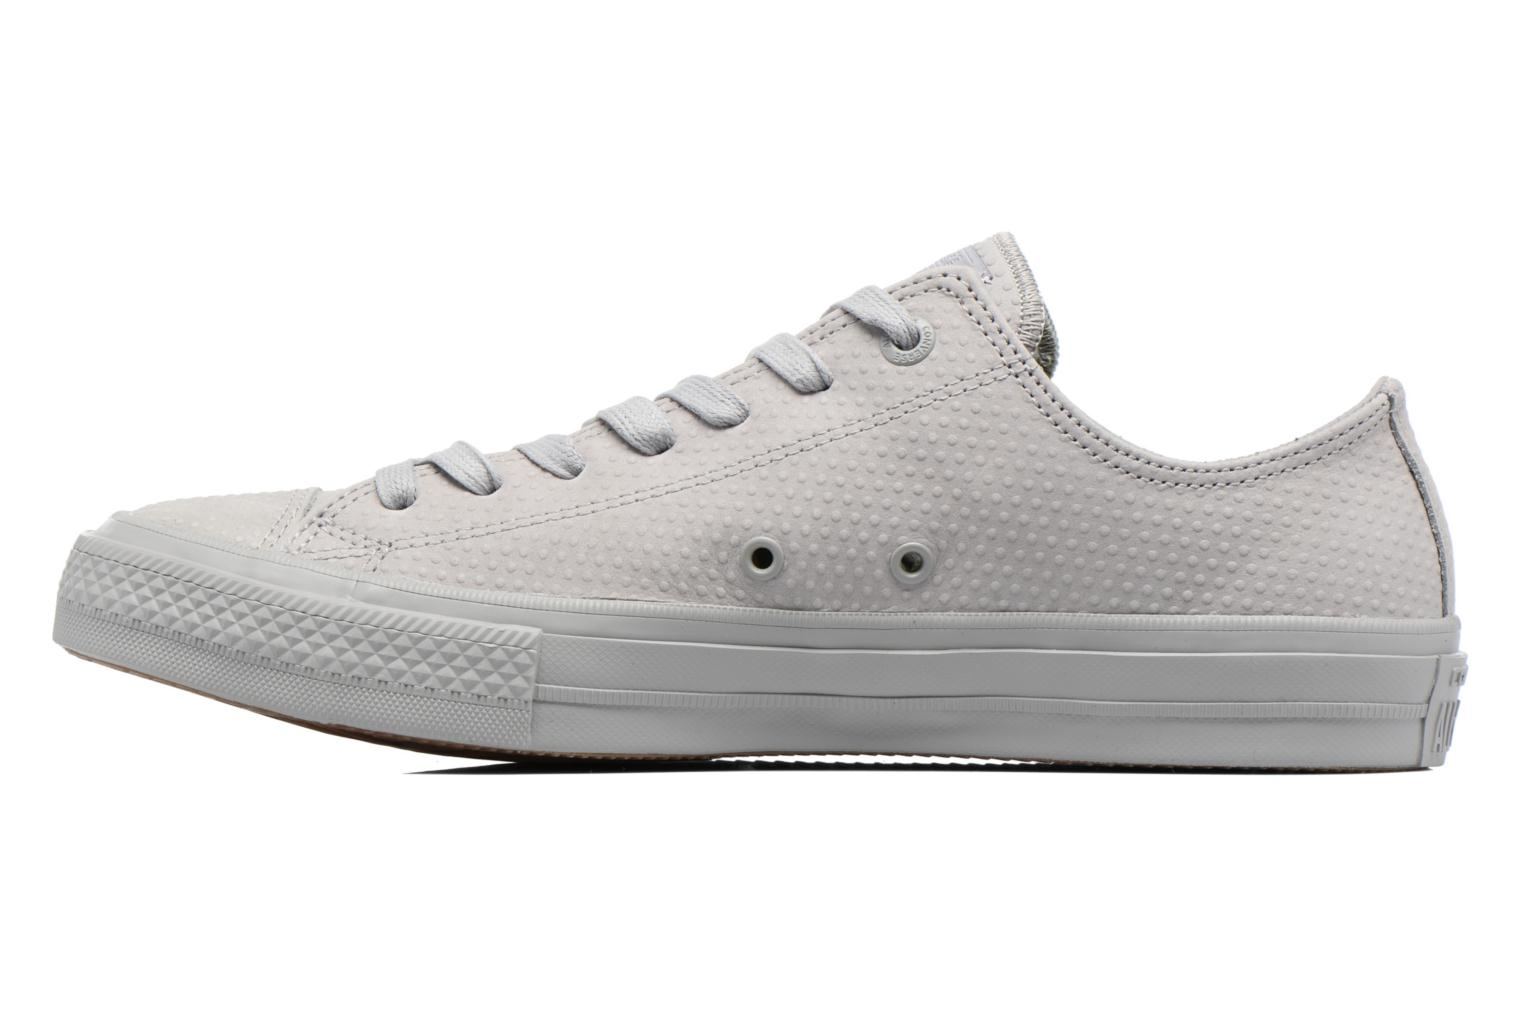 Beste Plaats Converse Chuck Taylor All Star II Ox Lux Leather Grijs Beste Koop Te Koop Outlet Footlocker Finish Tbu8P